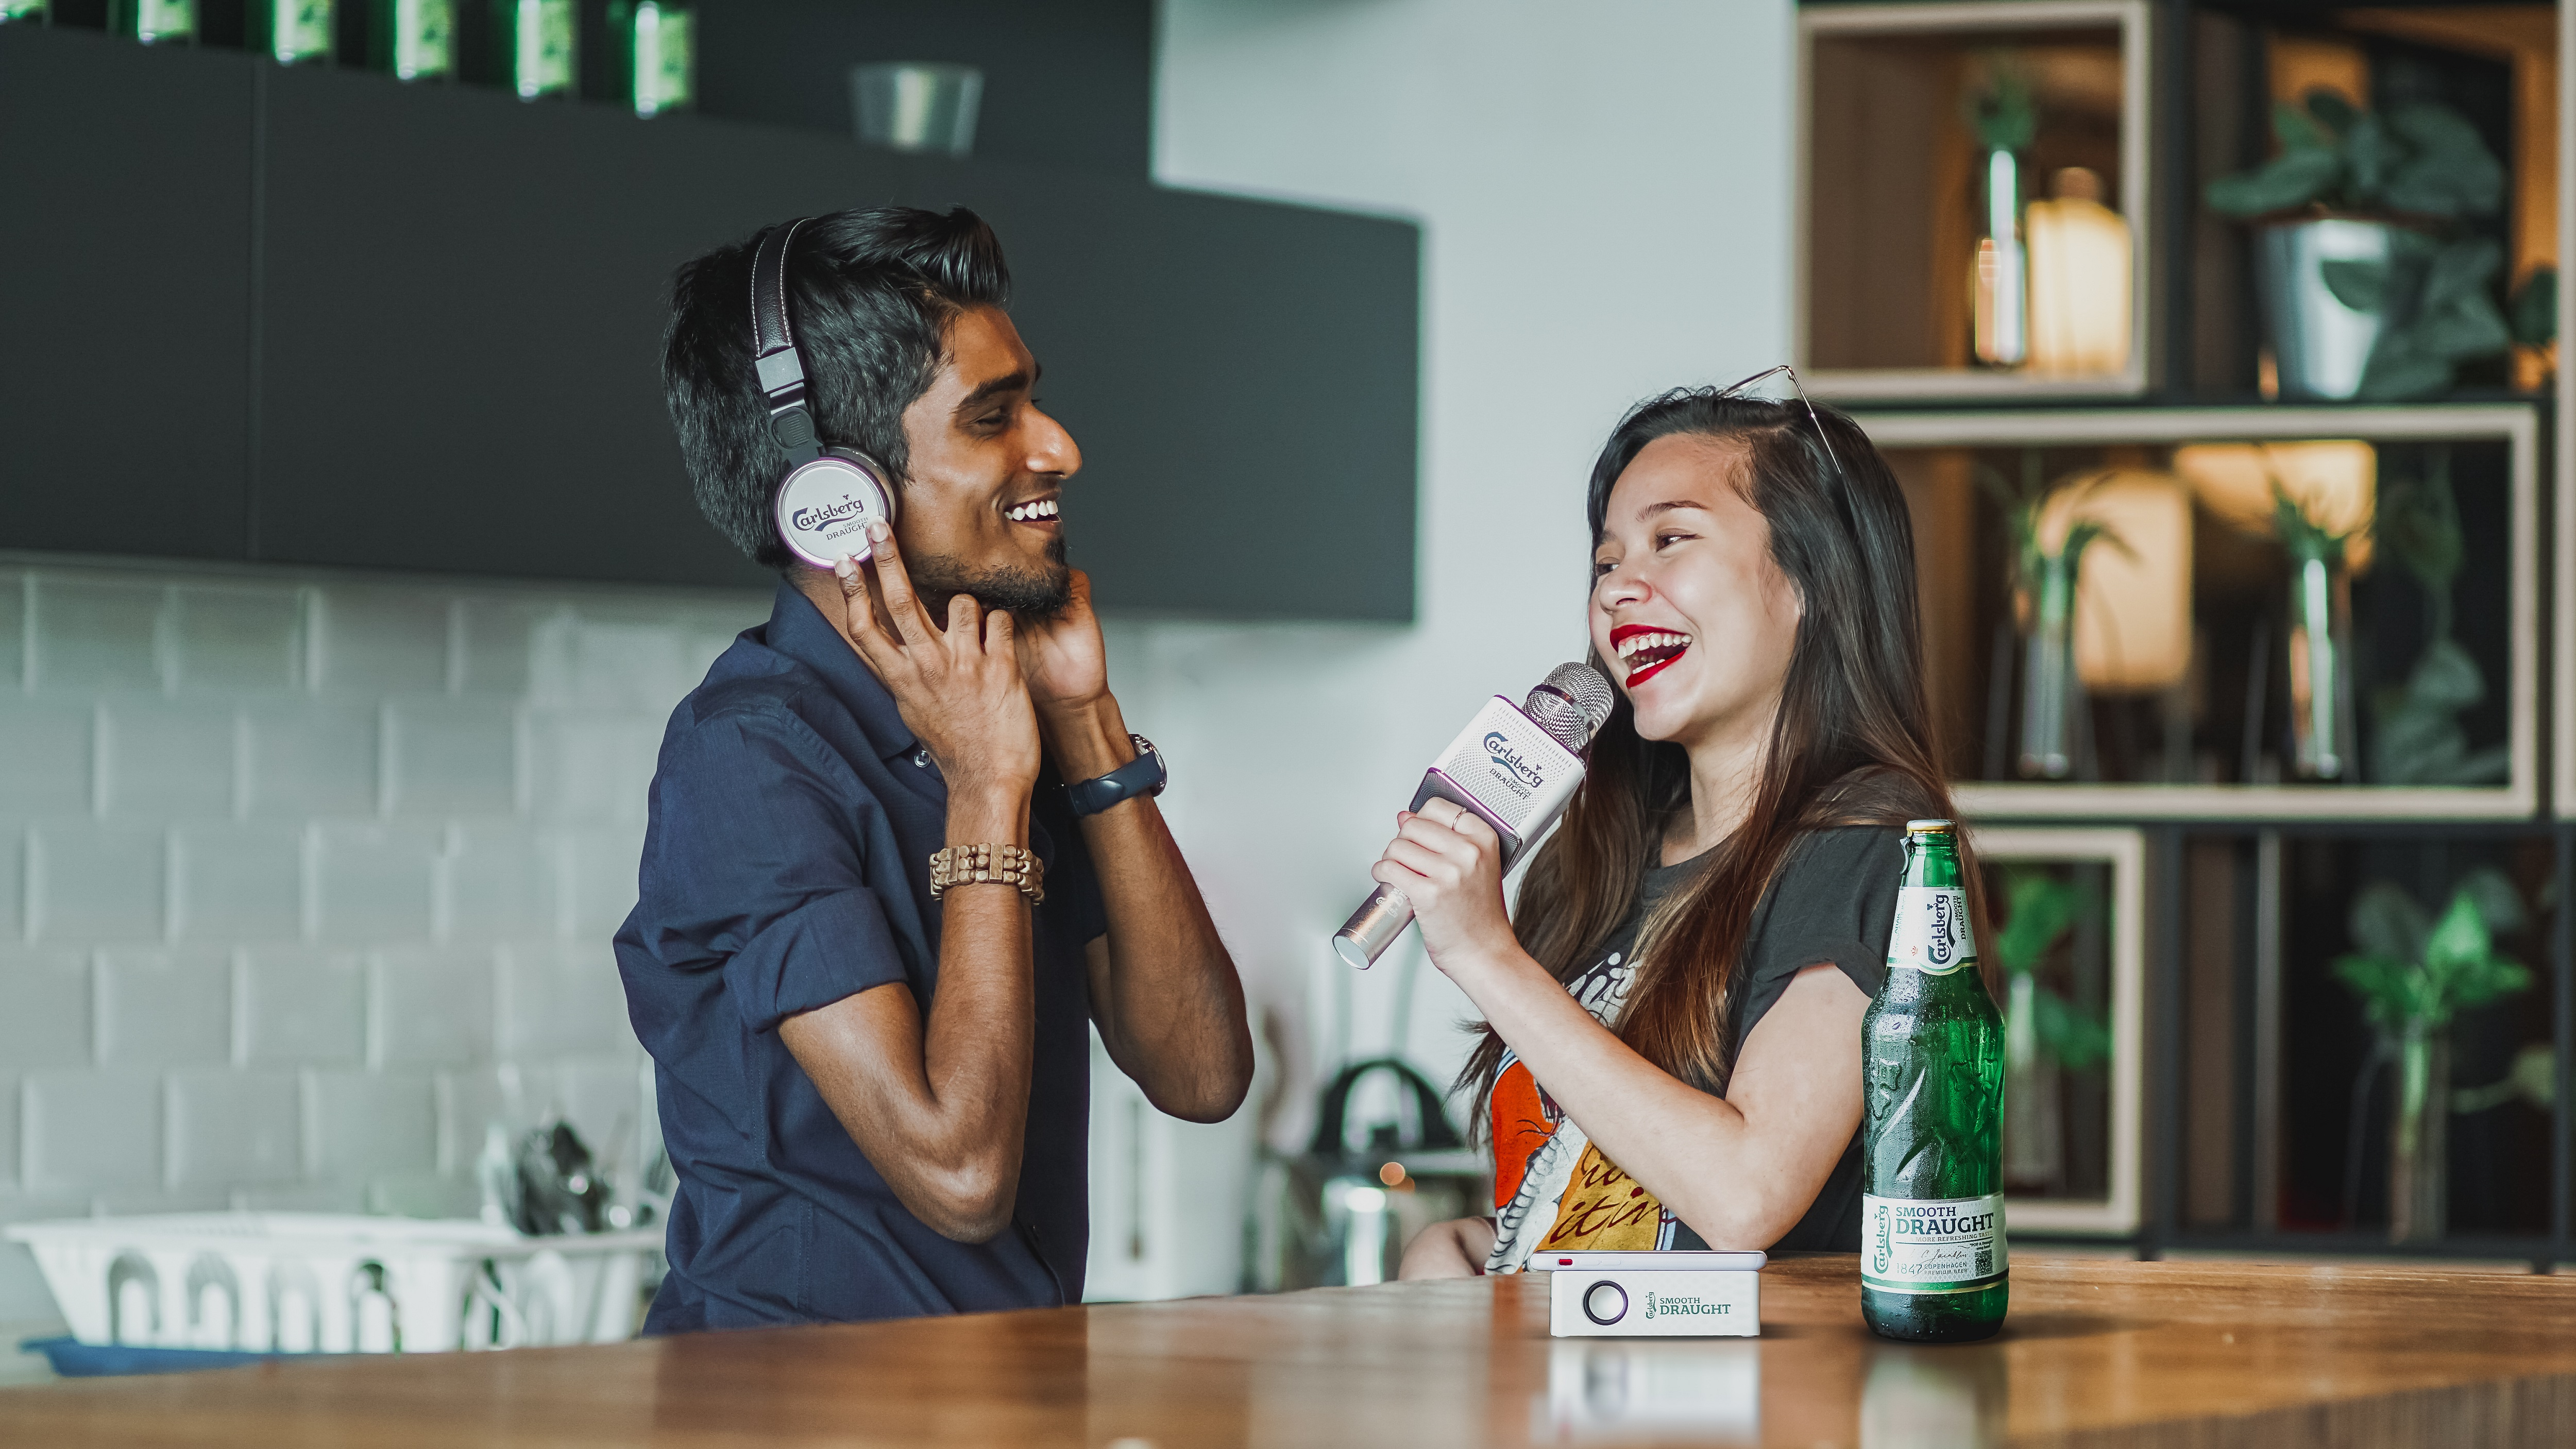 Drink Carlsberg and win cool goodies